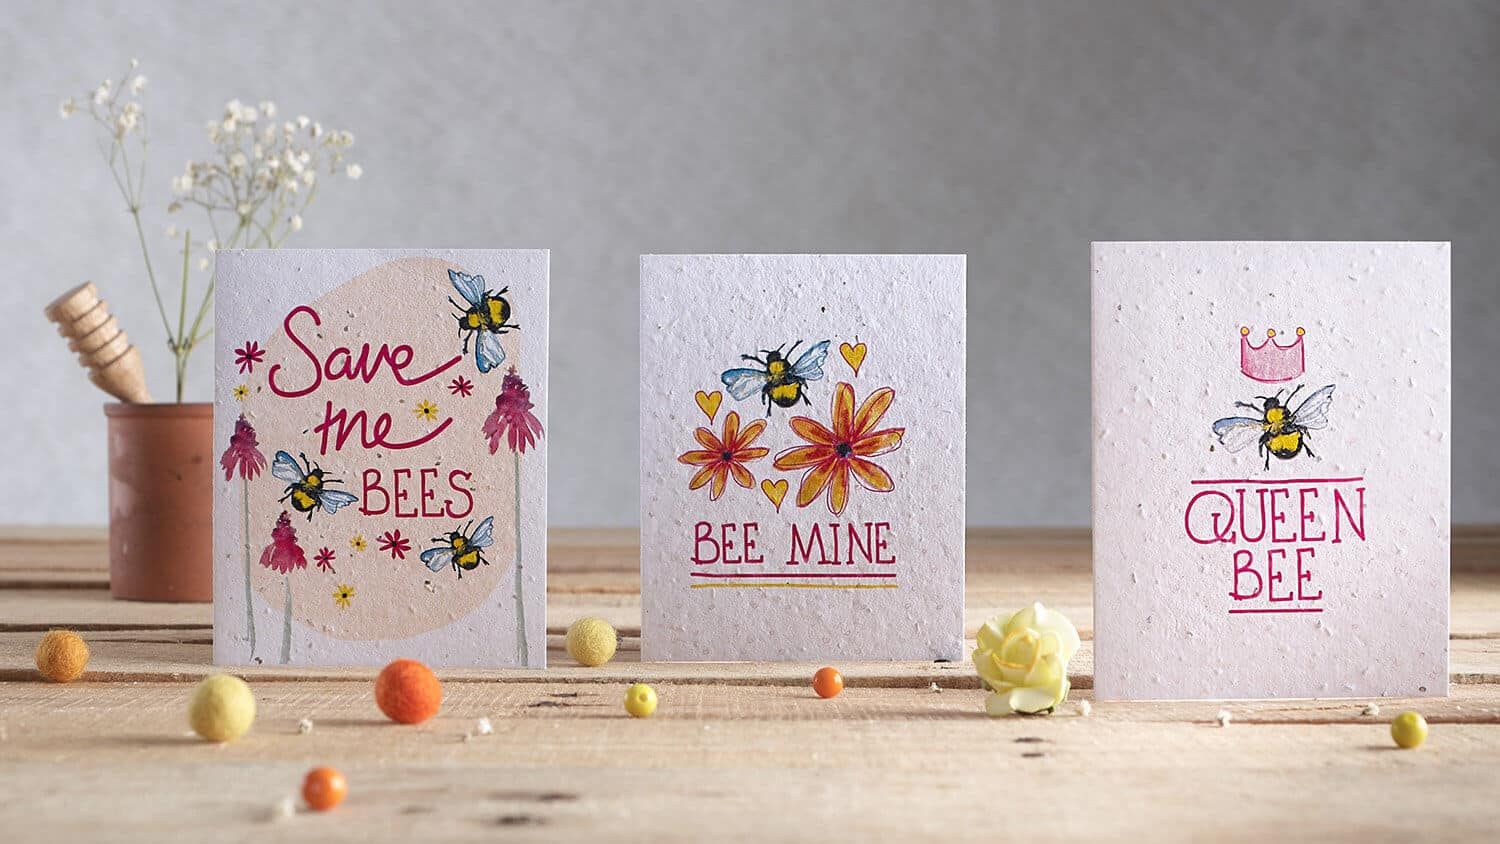 Styled greetings card product photography including props and cards by Hannah Marchant illustrates